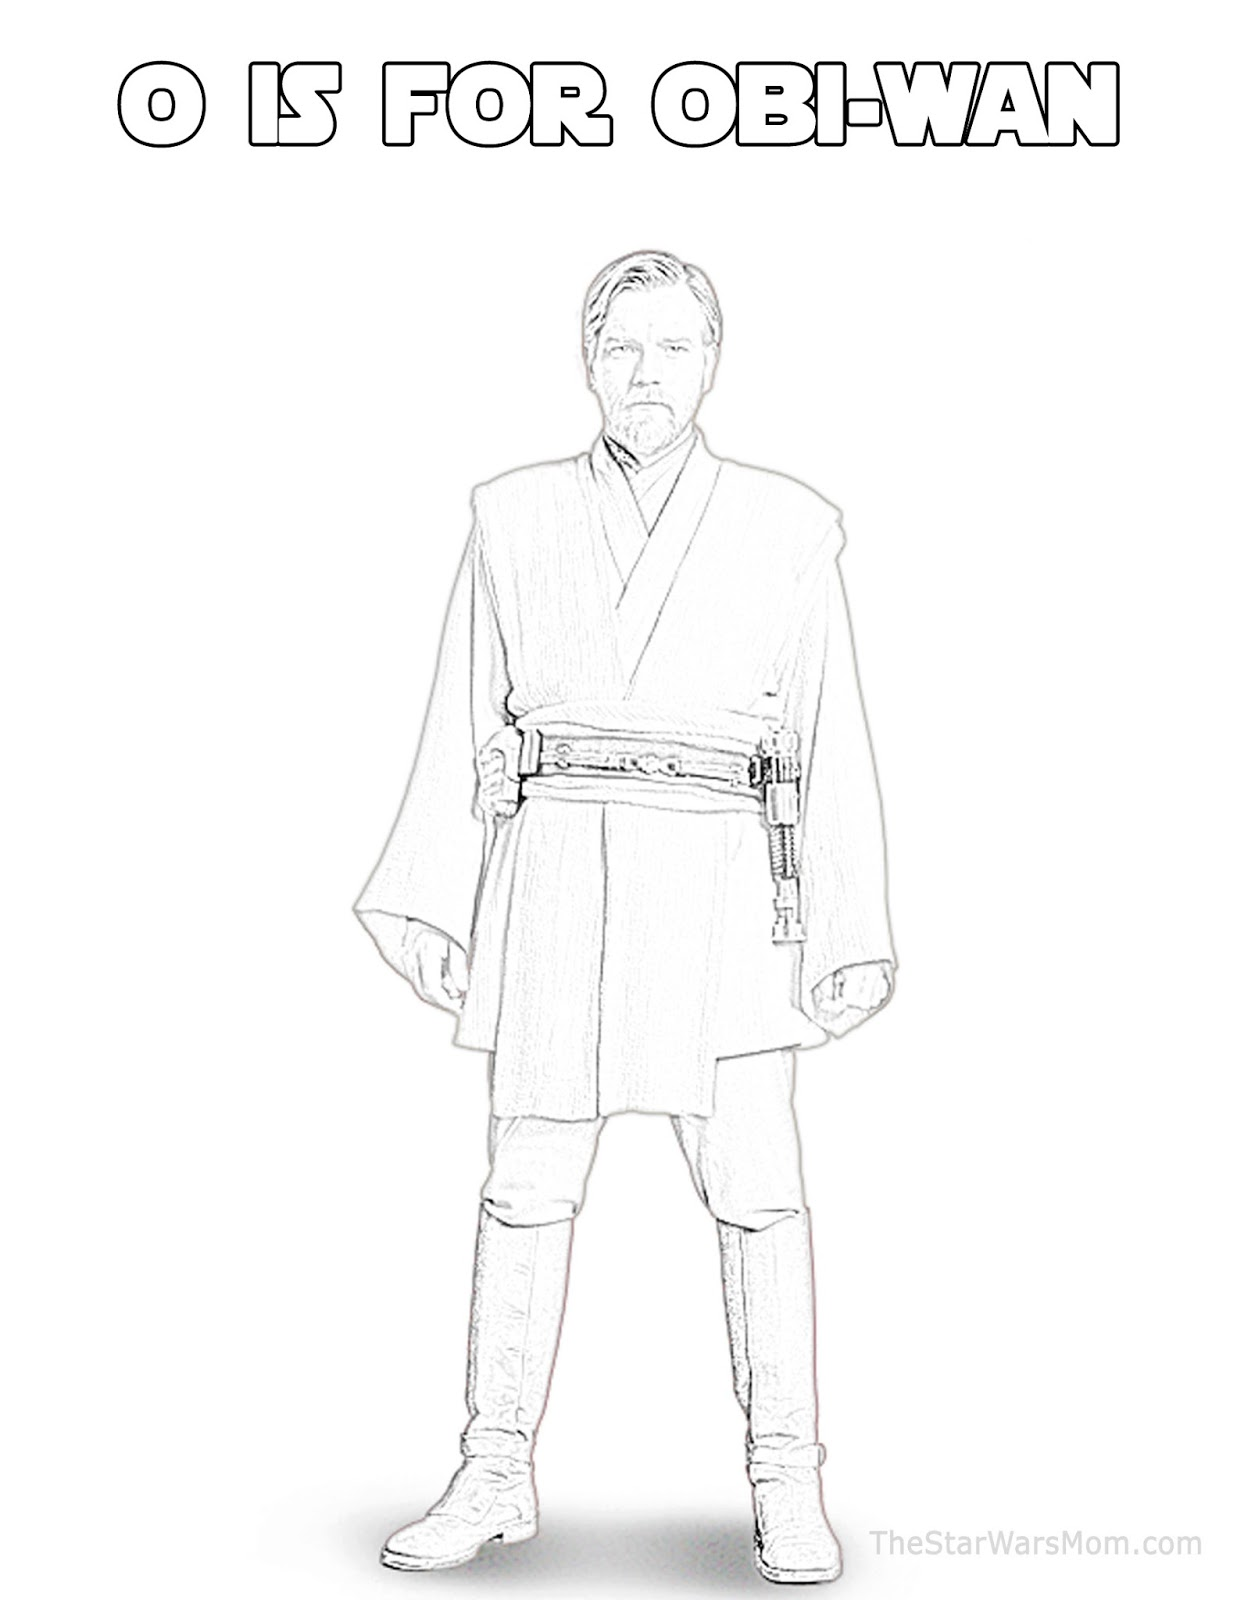 O is for ObiWan Kenobi Star Wars Alphabet Coloring Page The